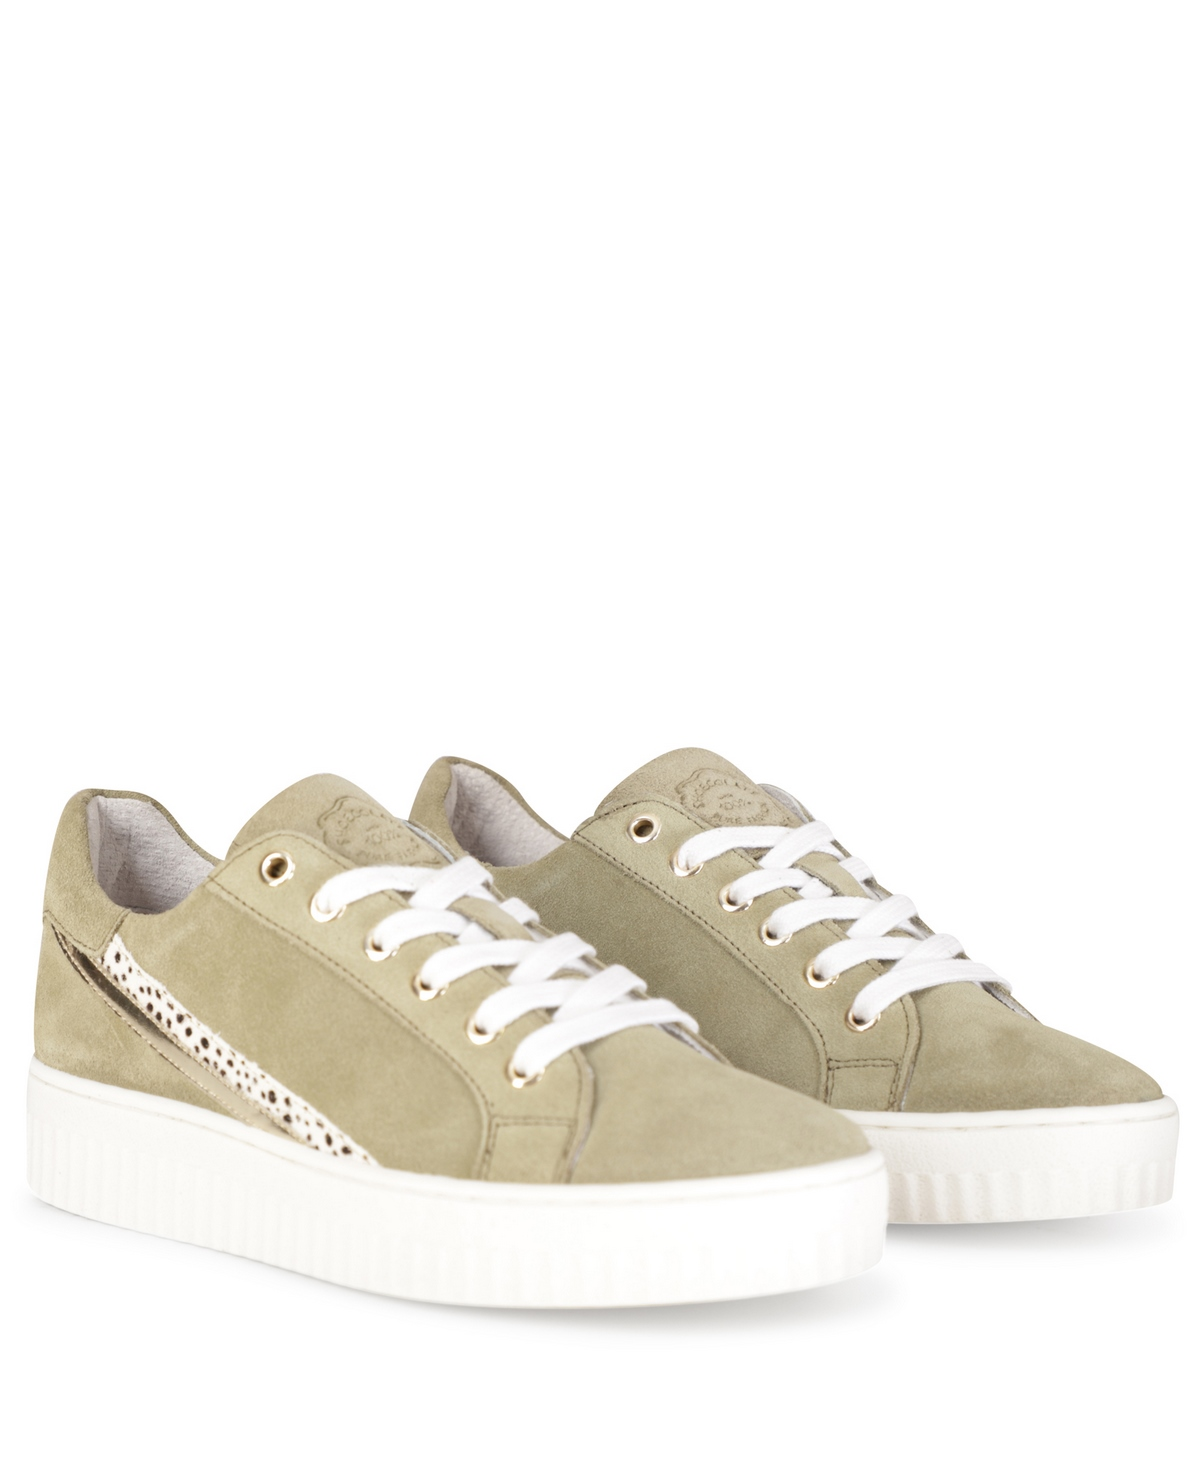 Shoecolate Sneaker Groen 8.10.02.060